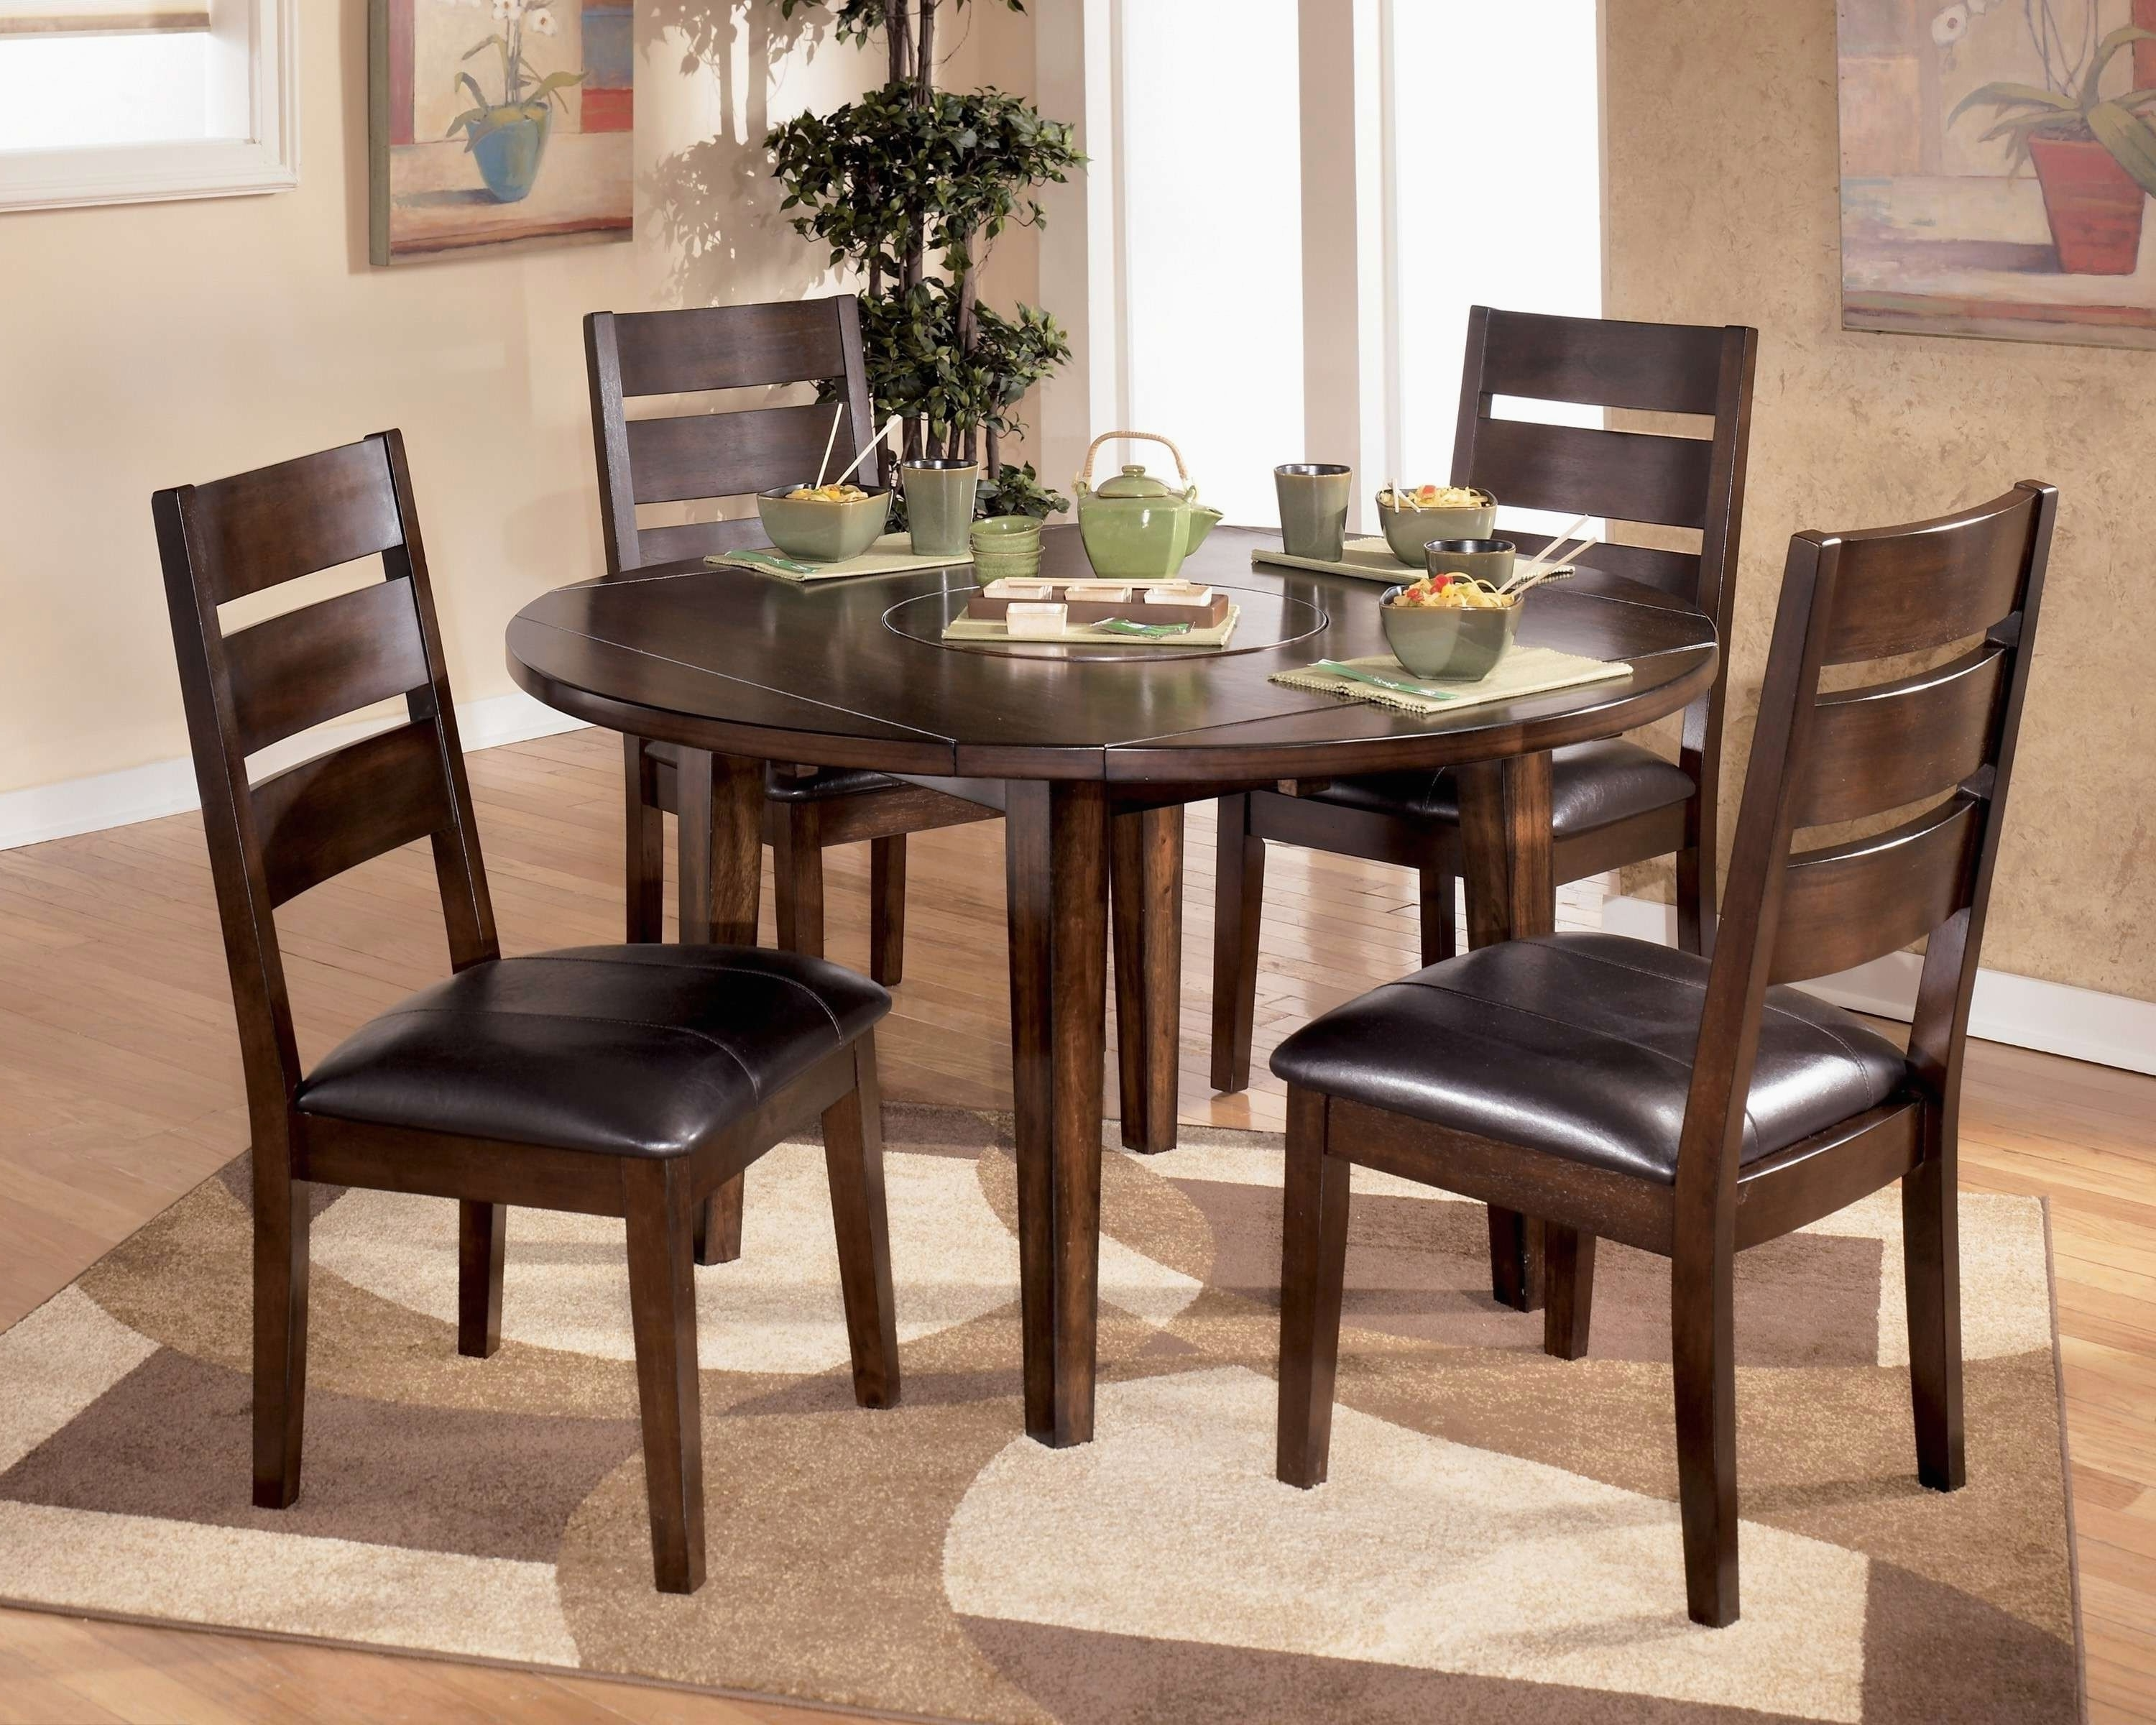 Decorative Oriental Dining Room Set In 6 Chair Round Dining Table Regarding Most Popular Asian Dining Tables (View 7 of 25)